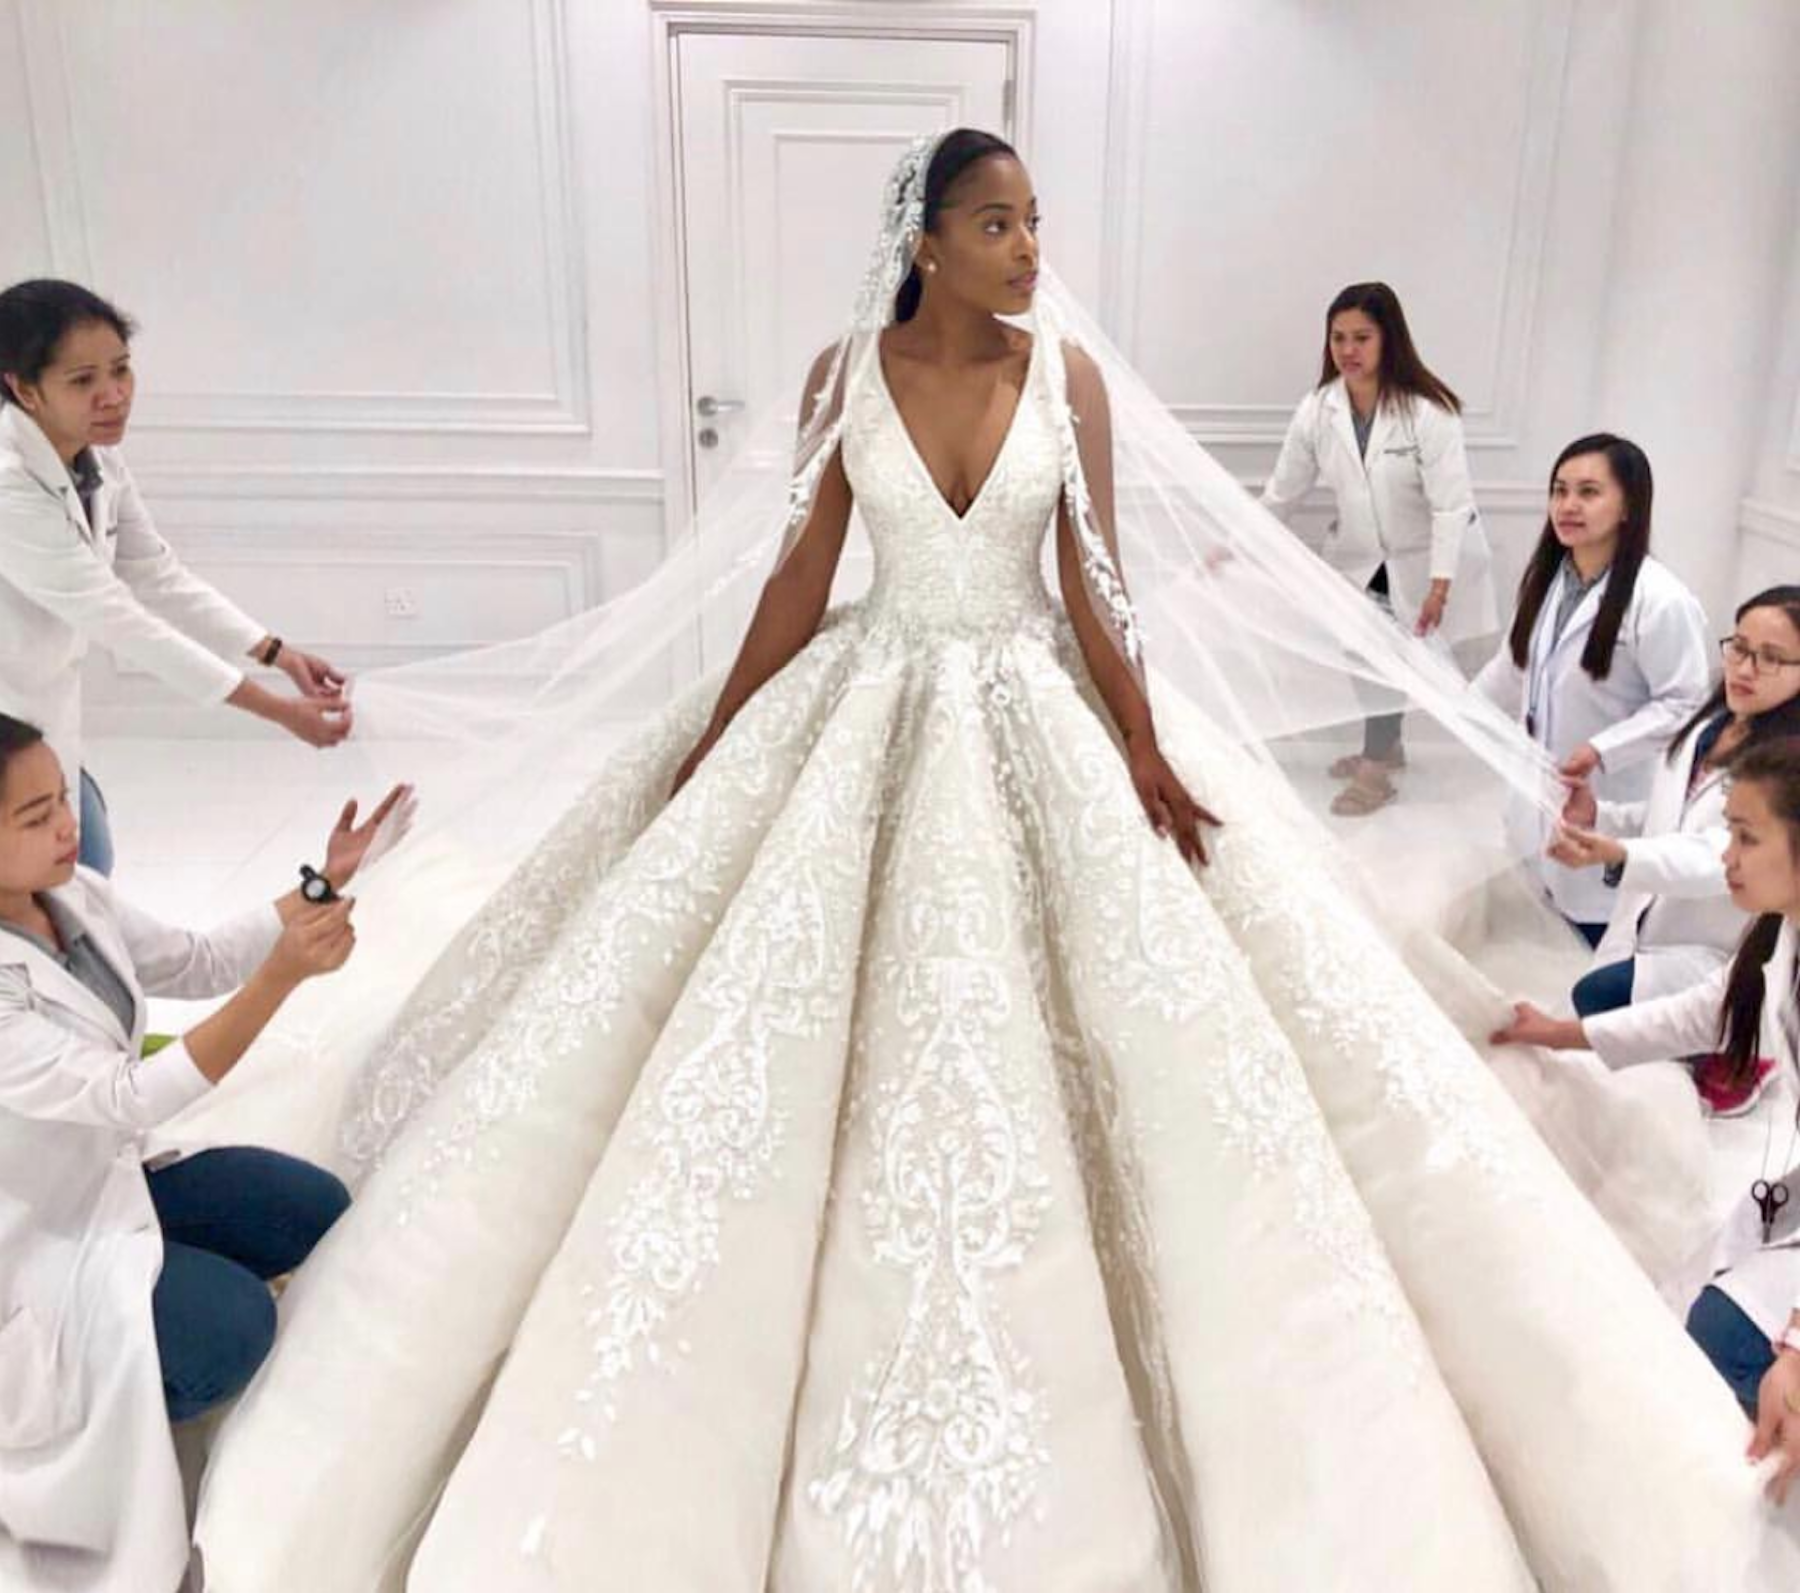 This real bride took our breath away in a Michael Cinco ball gown. - The beauty was made of tulle, lace, paillette, pearls, and Swarovski crystals.Photo via Michael Cinco.